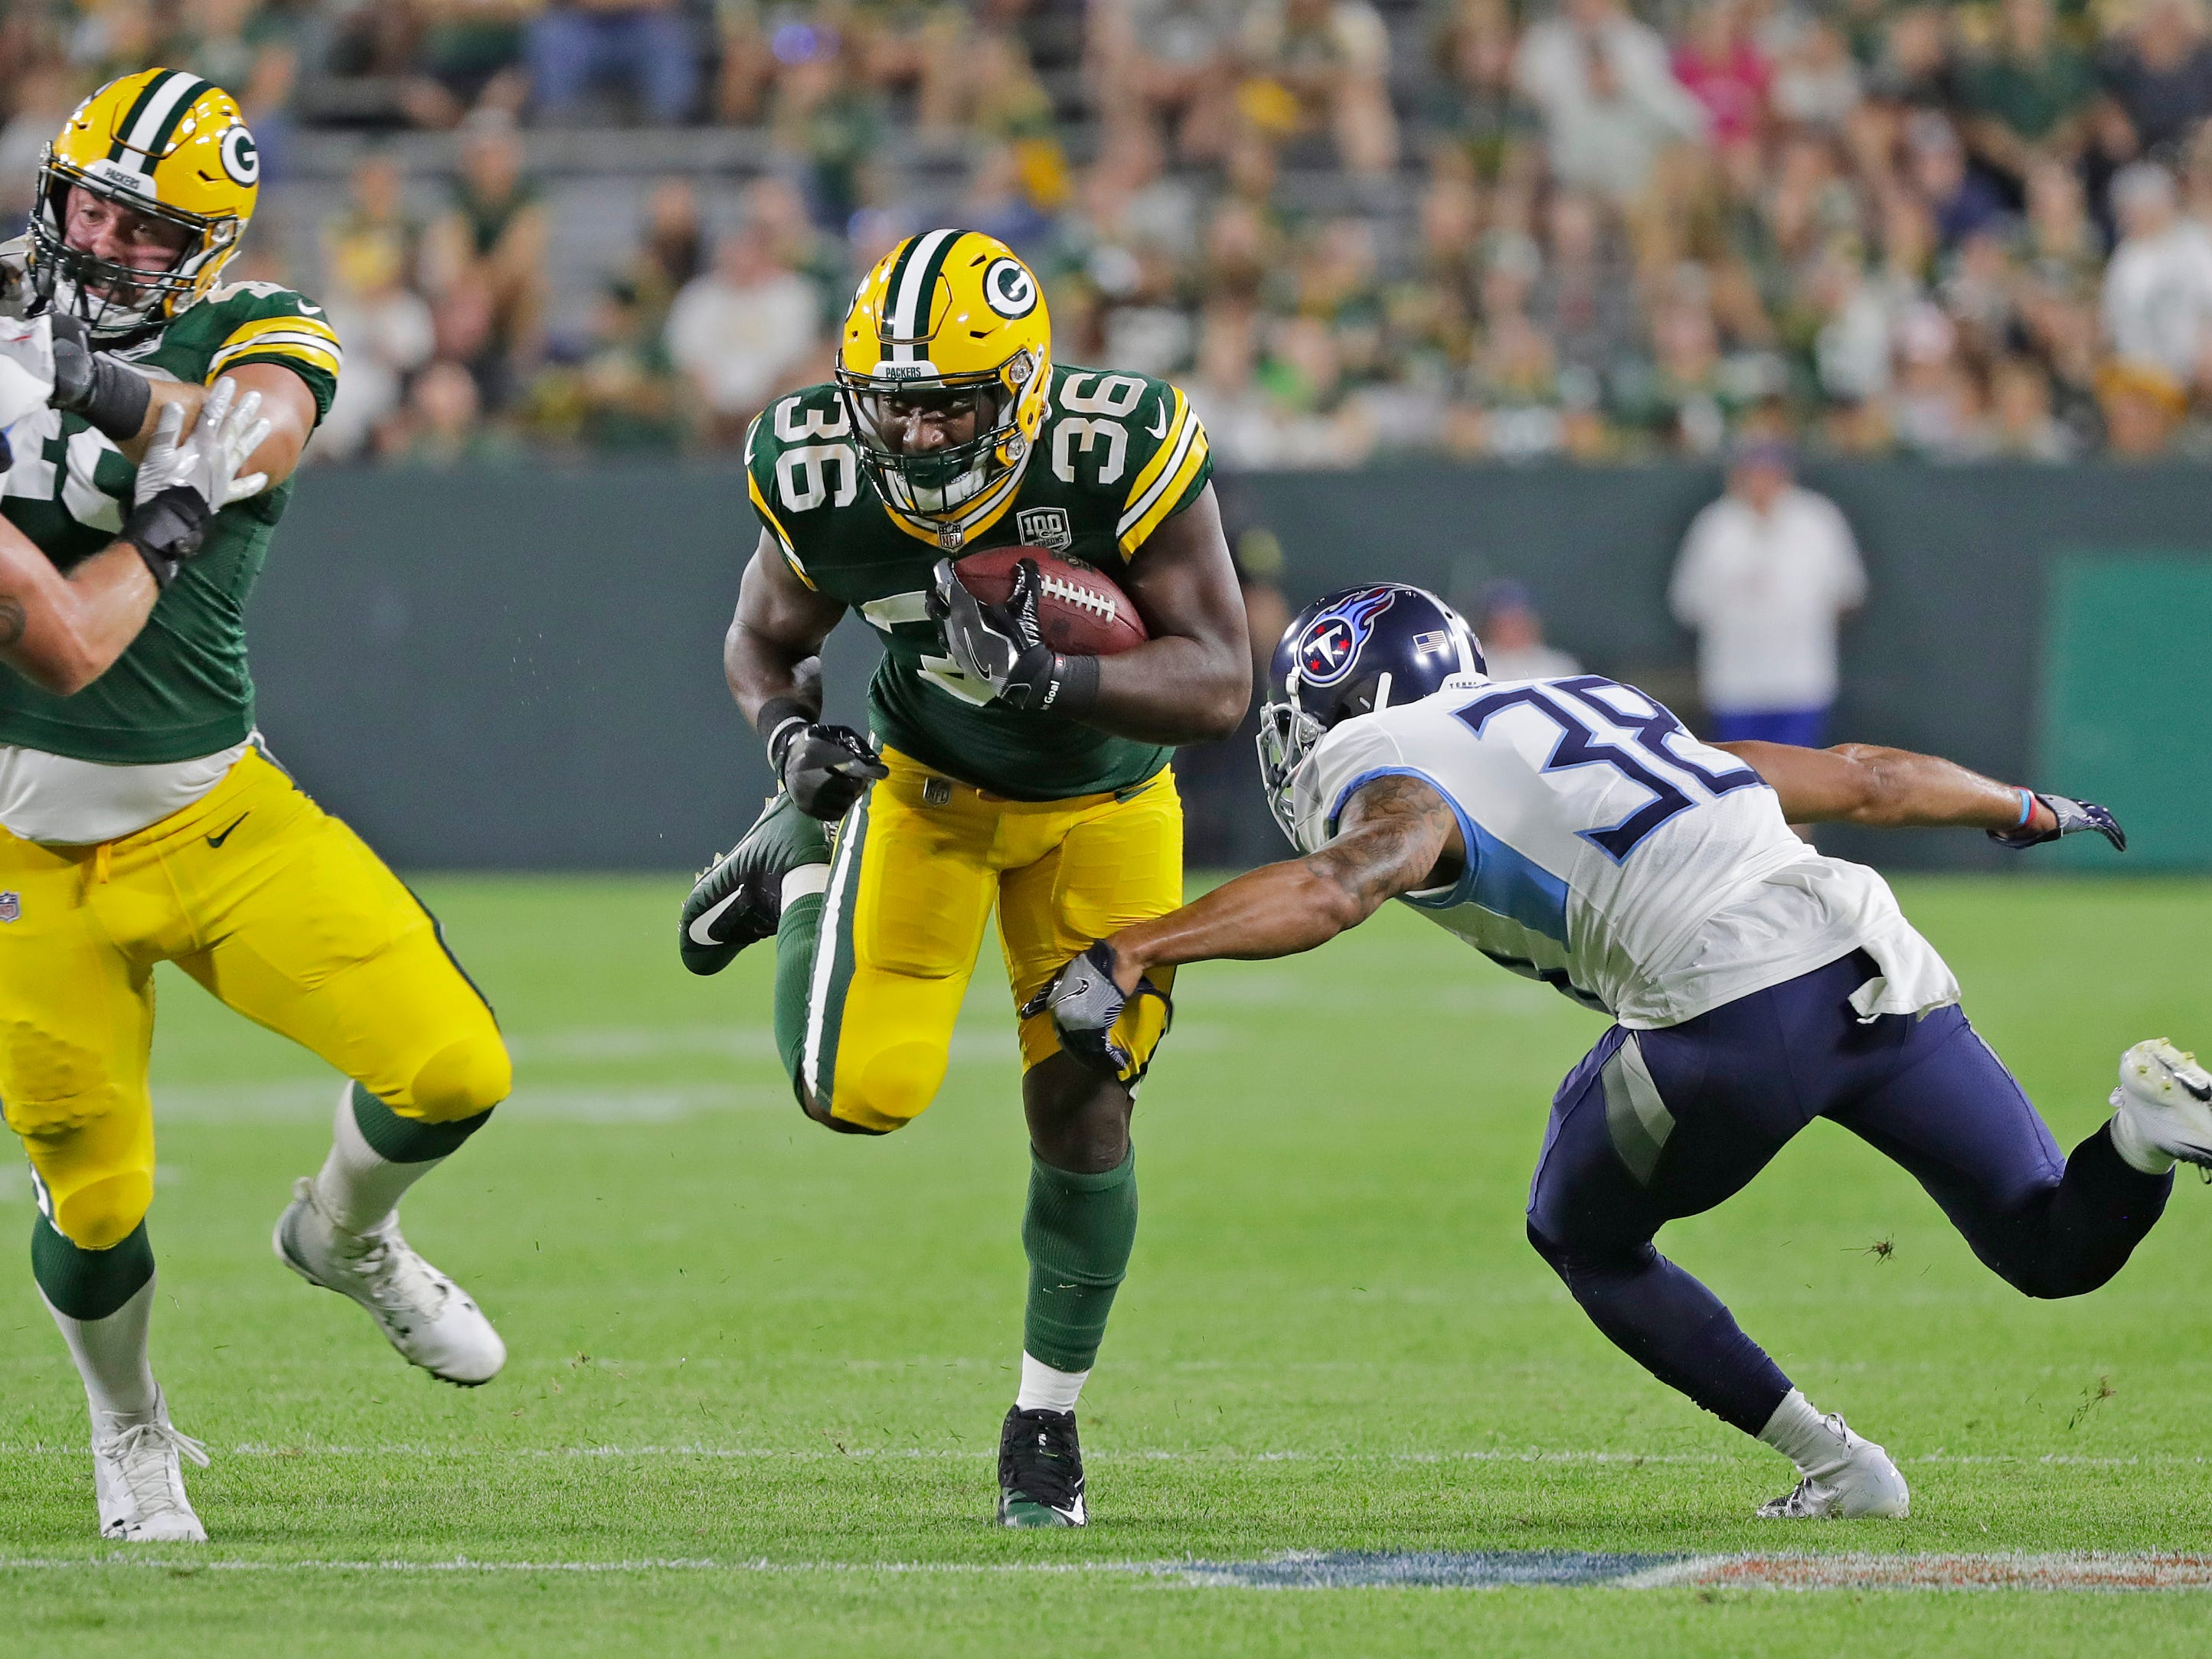 Green Bay Packers defensive back Akeem Judd (36) rushes against Tennessee Titans defensive back Joseph Este (38) in the fourth quarter of an NFL preseason game at Lambeau Field on Thursday, August 9, 2018 in Green Bay, Wis.